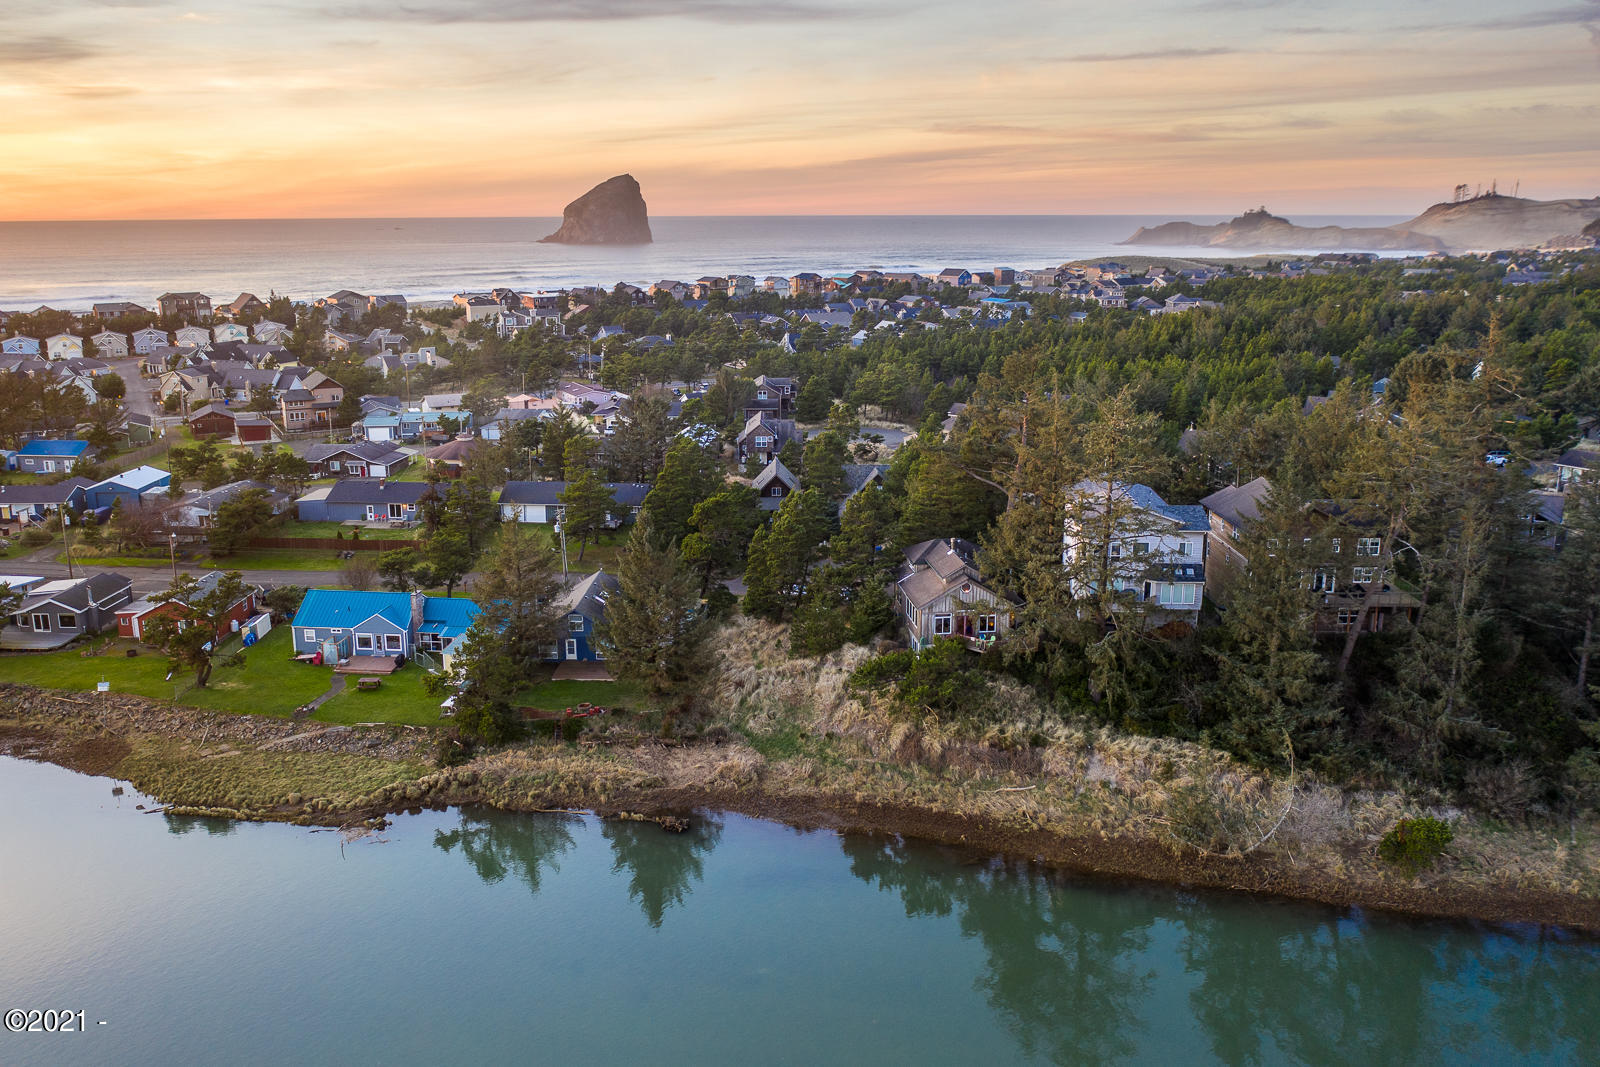 LOT 118 Nestucca Blvd, Pacific City, OR 97135 - Aerial to West